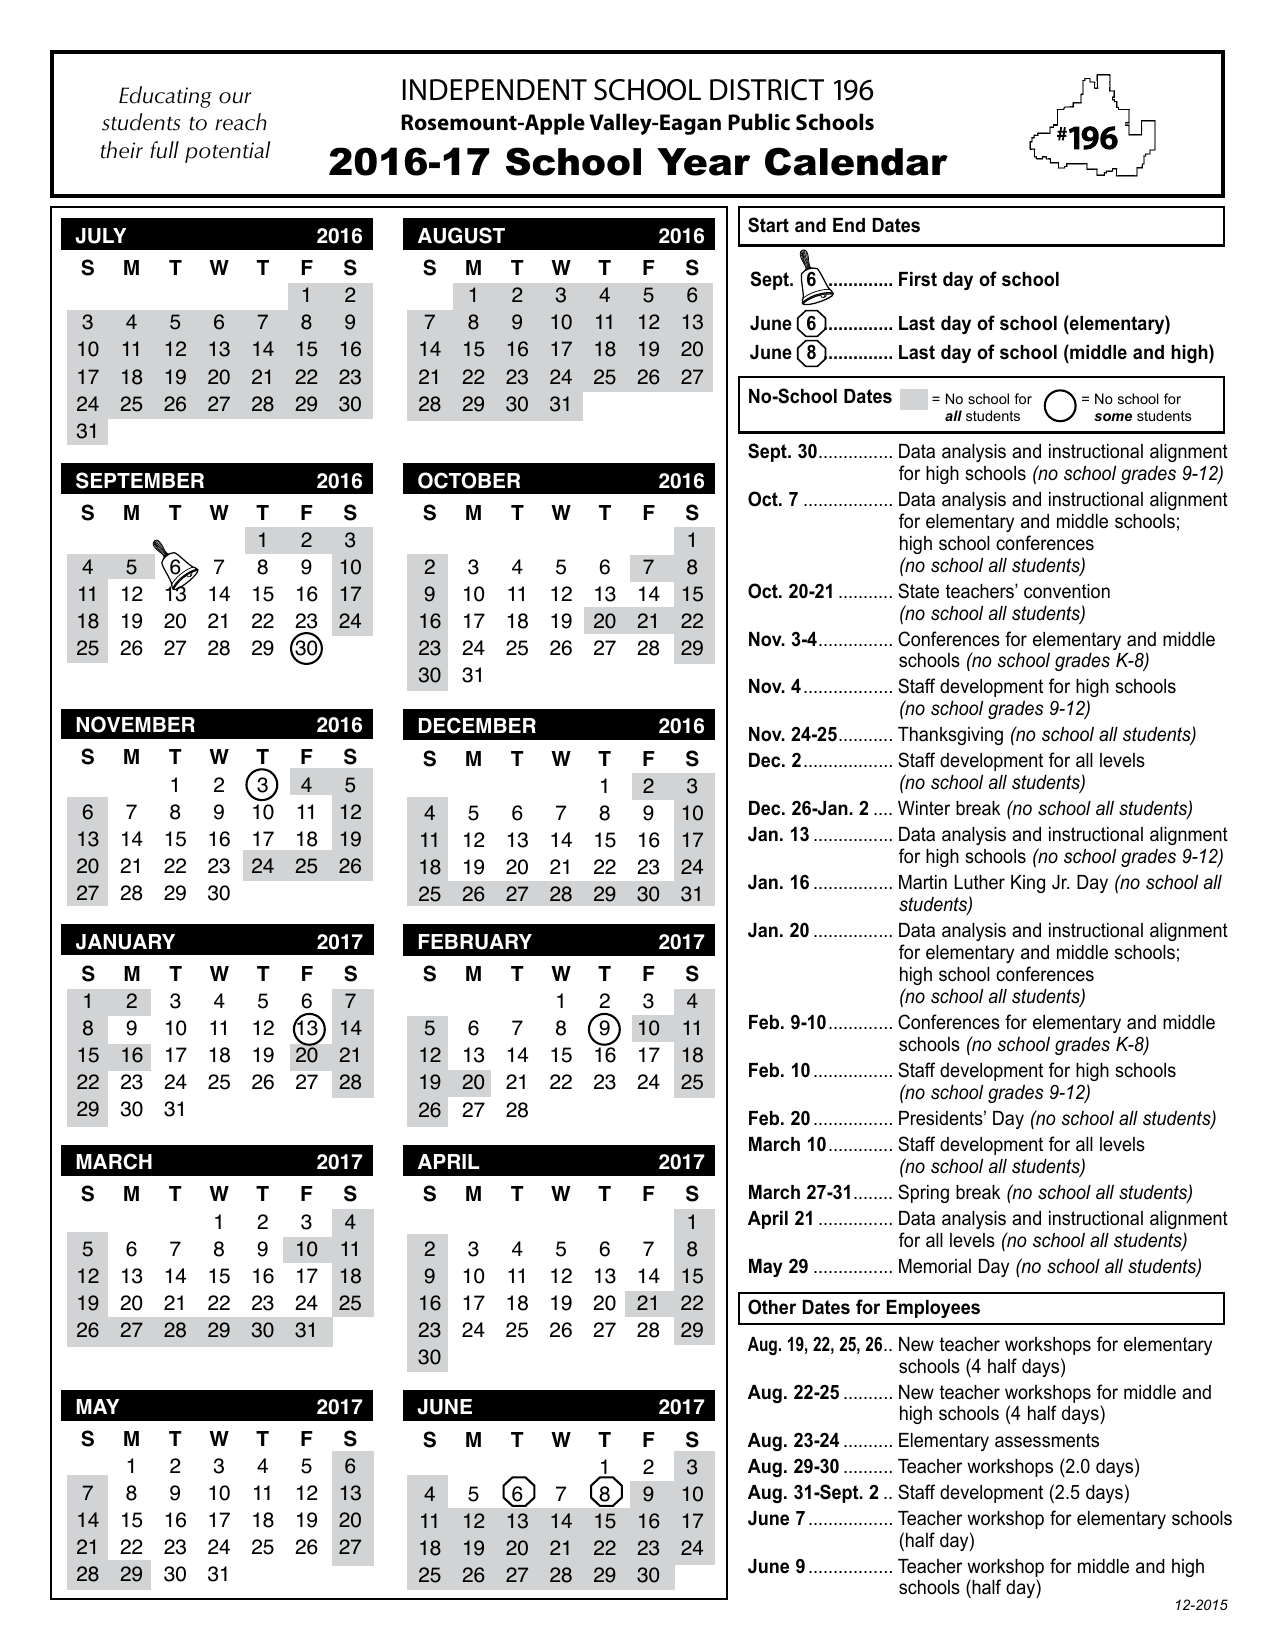 2016-17 School Year Calendar INDEPENDENT SCHOOL DISTRICT 196